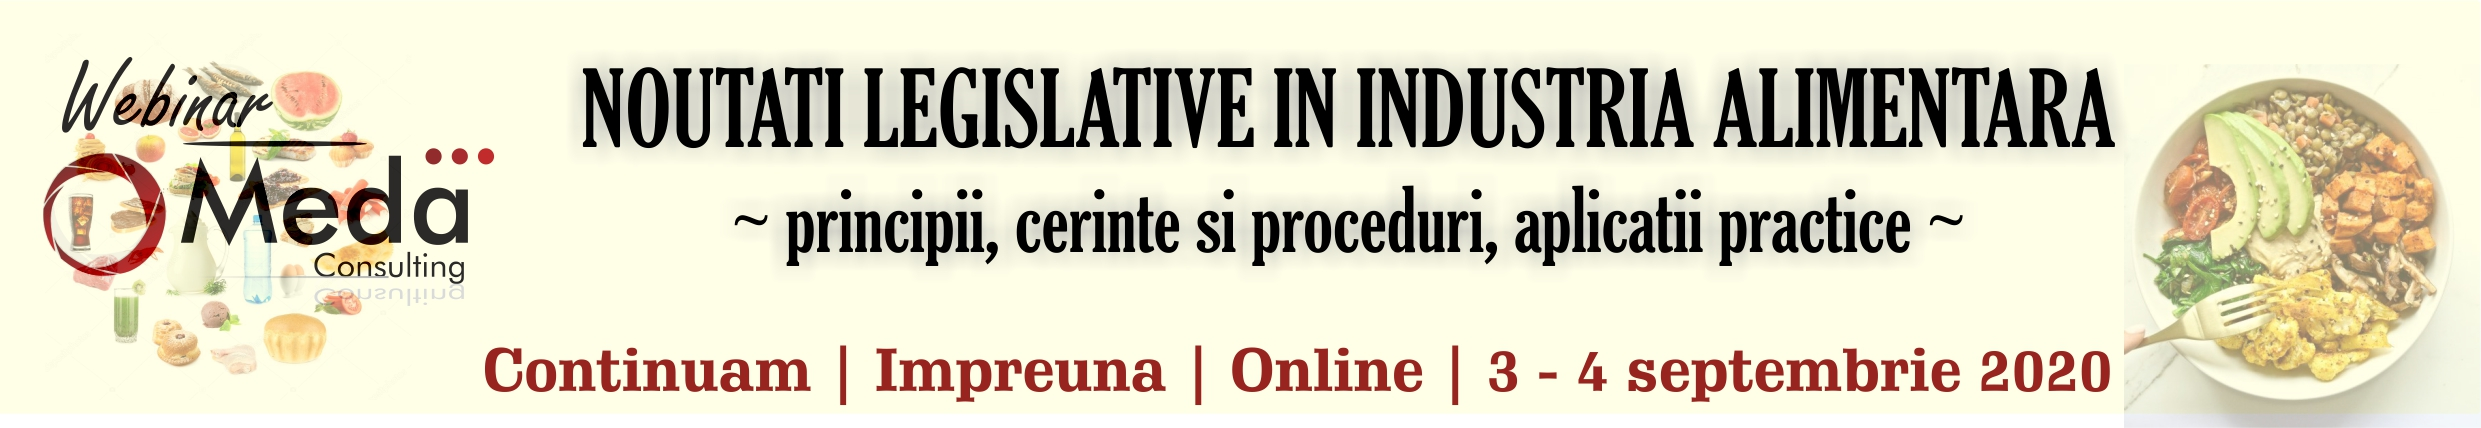 noutati legislative in industria alimentara